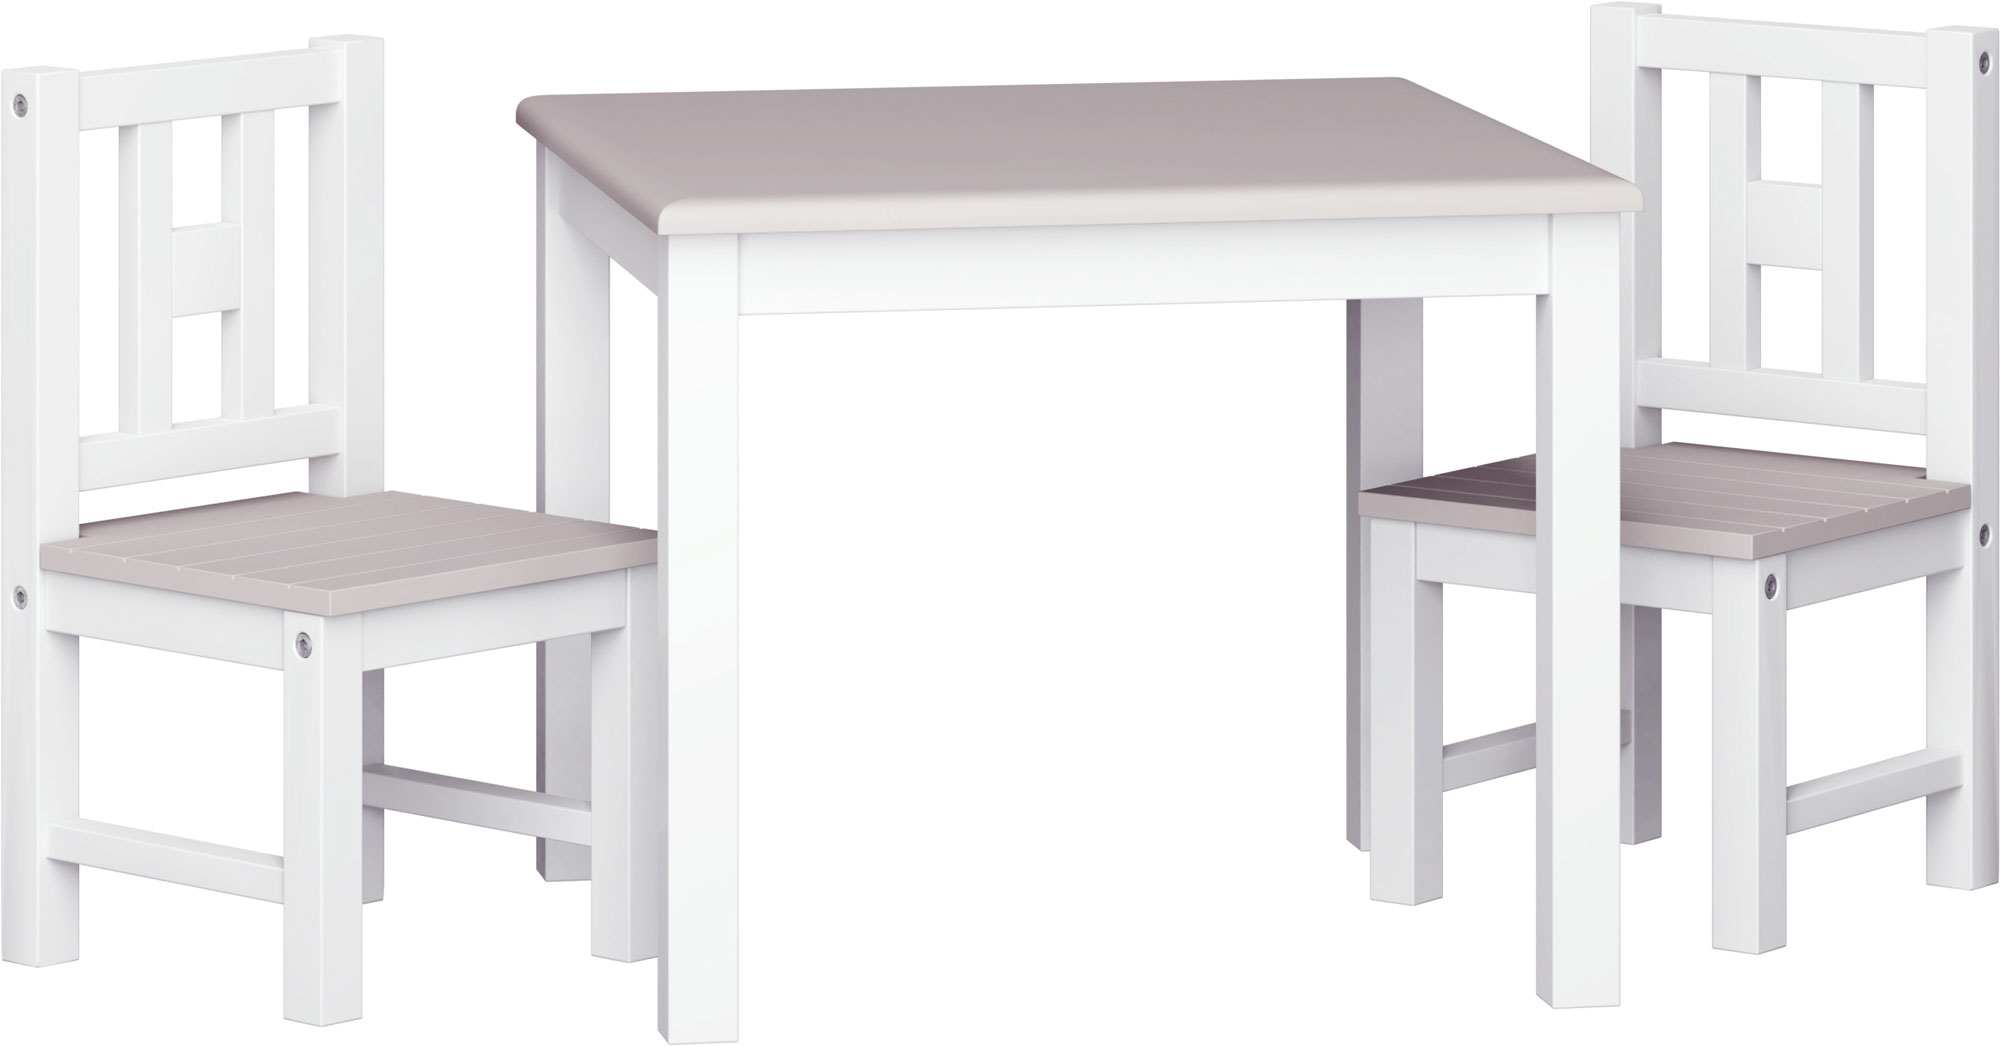 2 chairs IB-Style Childrens seating area LUCA table and chair nursery furniture kids 1 table 3 combinations